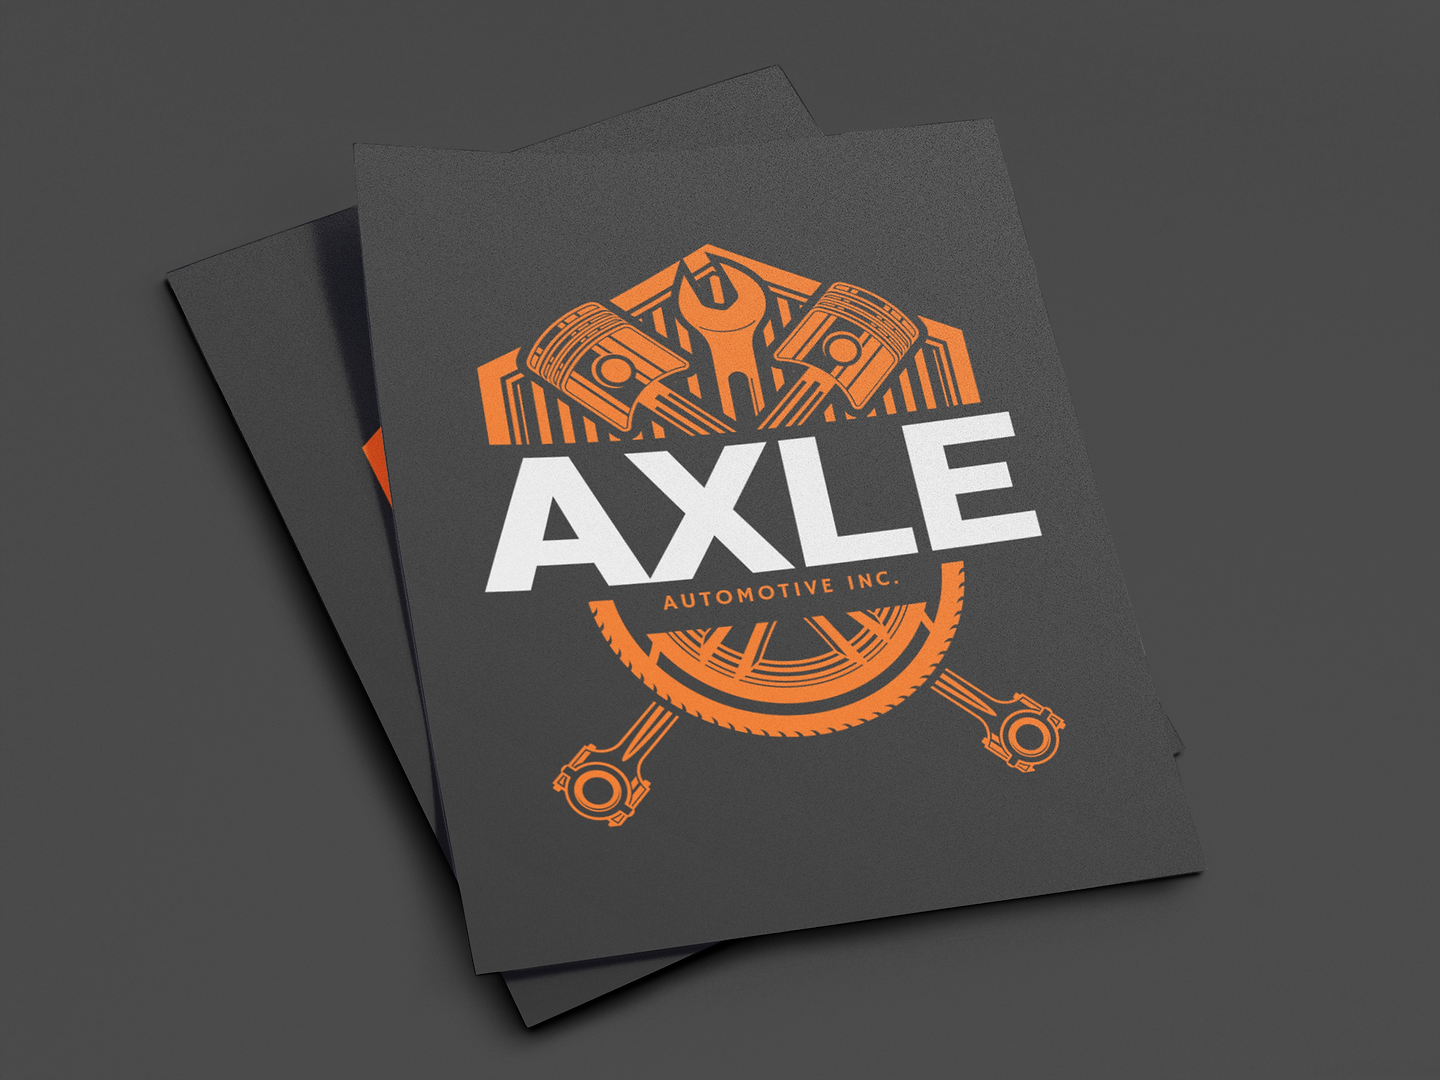 Axle Automotive Inc.